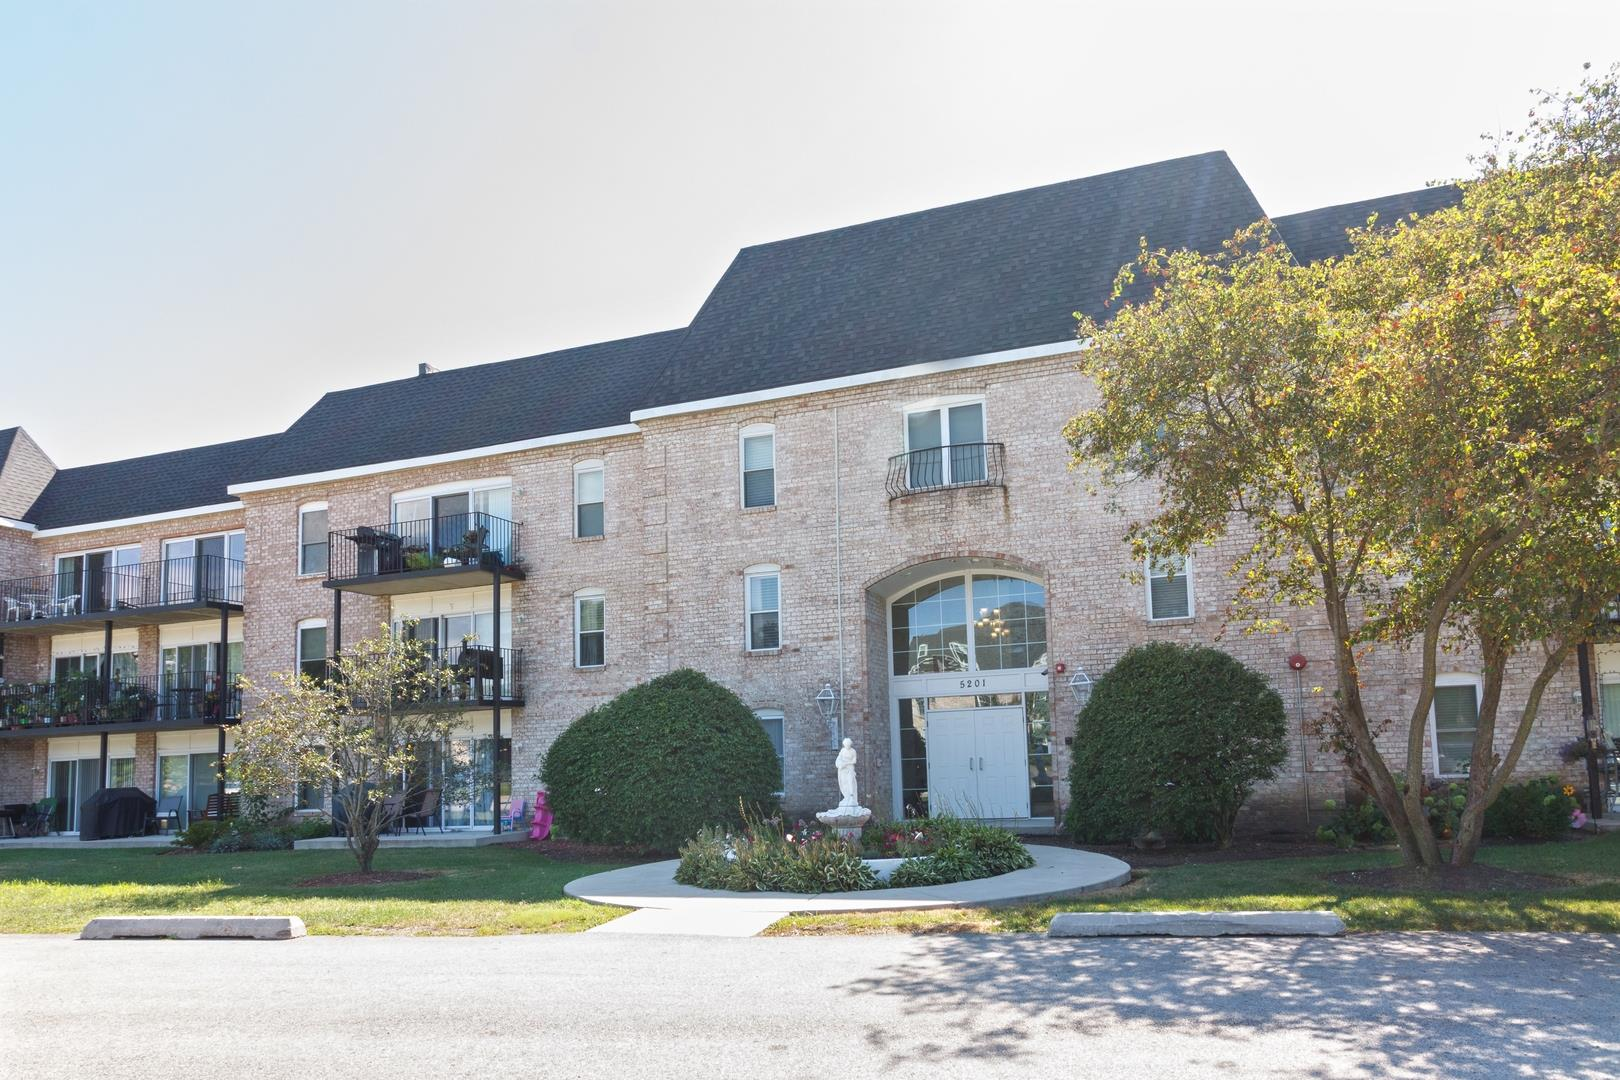 5201 Carriageway Drive #304, Rolling Meadows, IL 60008 - #: 11020253